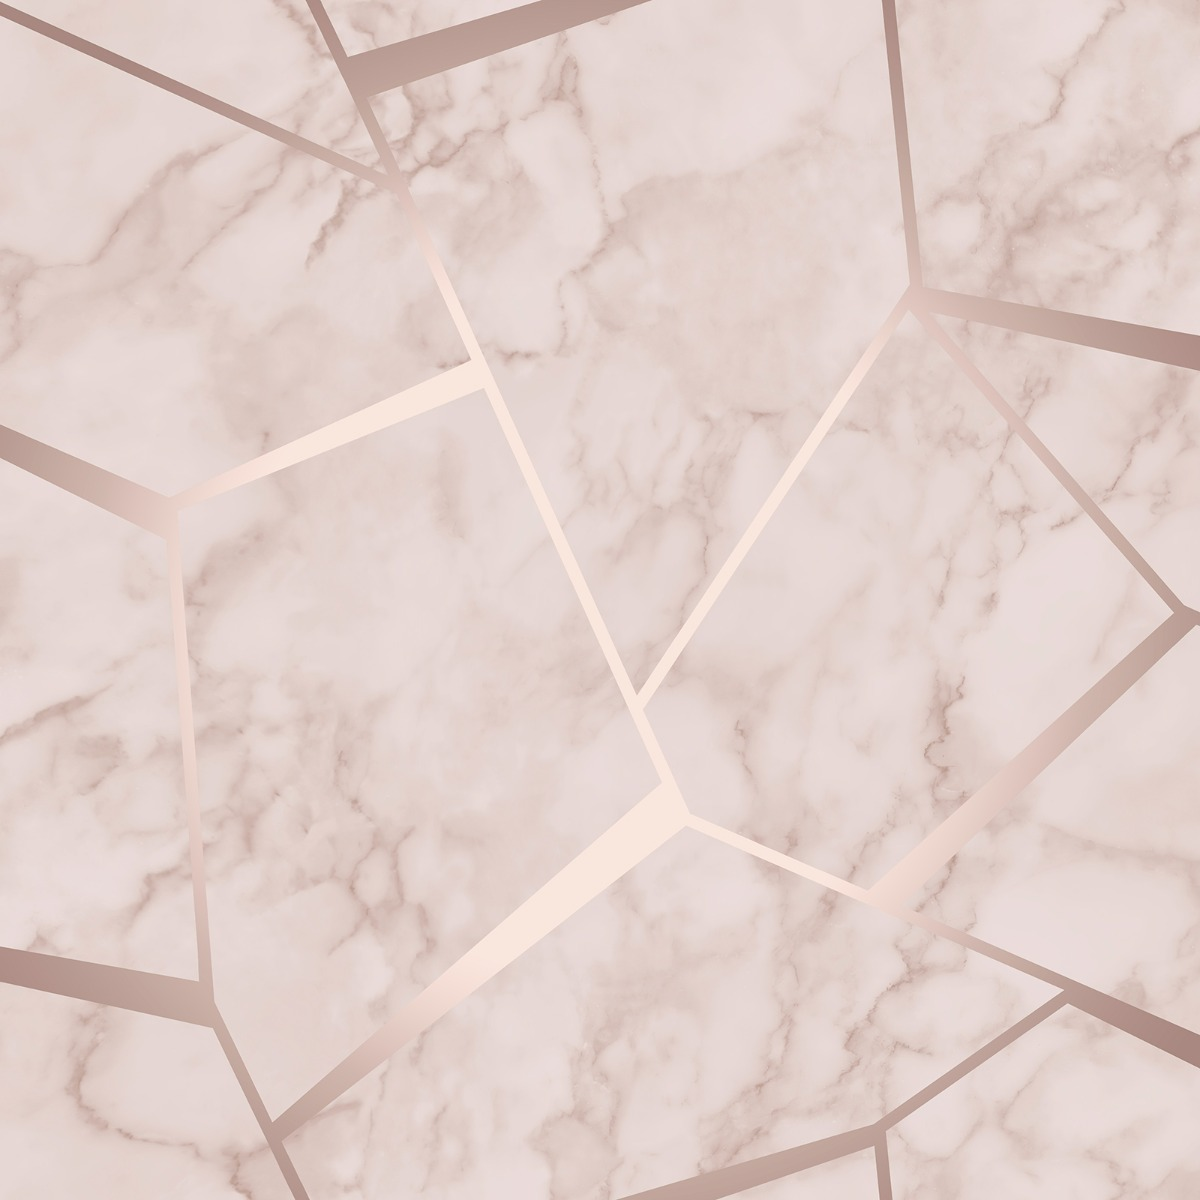 Fractal Geometric Marble Wallpaper Rose Gold Metallic